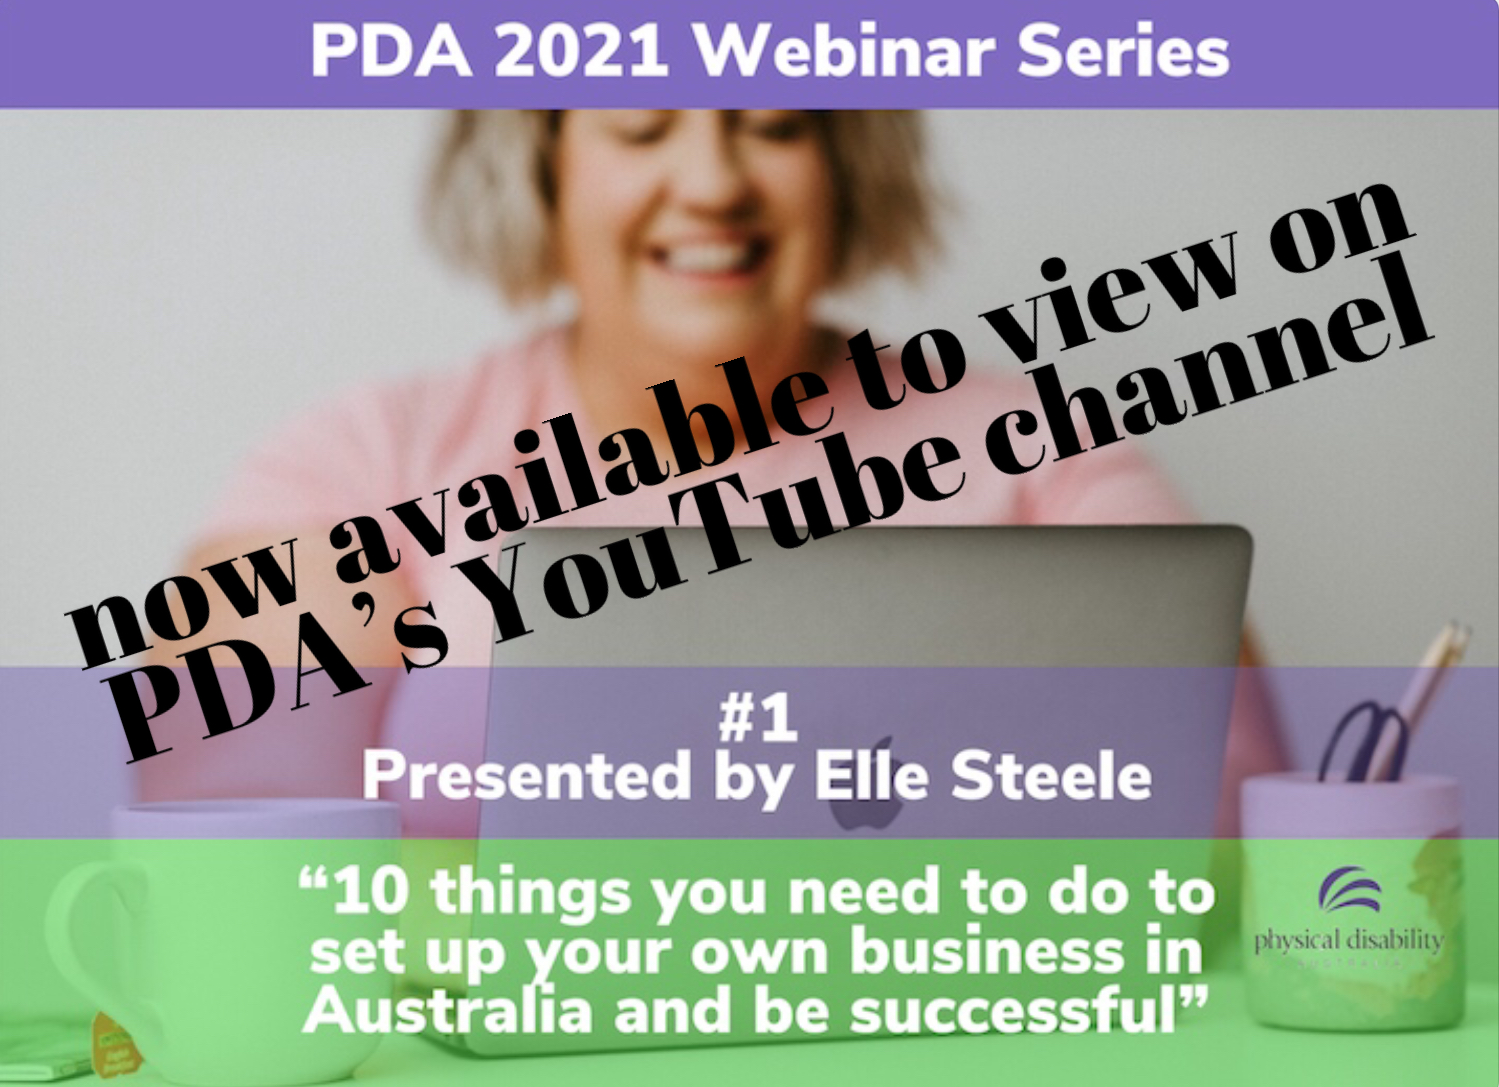 Elle Steele's successful presentation in PDA's 2021 Webinar Series – now available on our YouTube channel